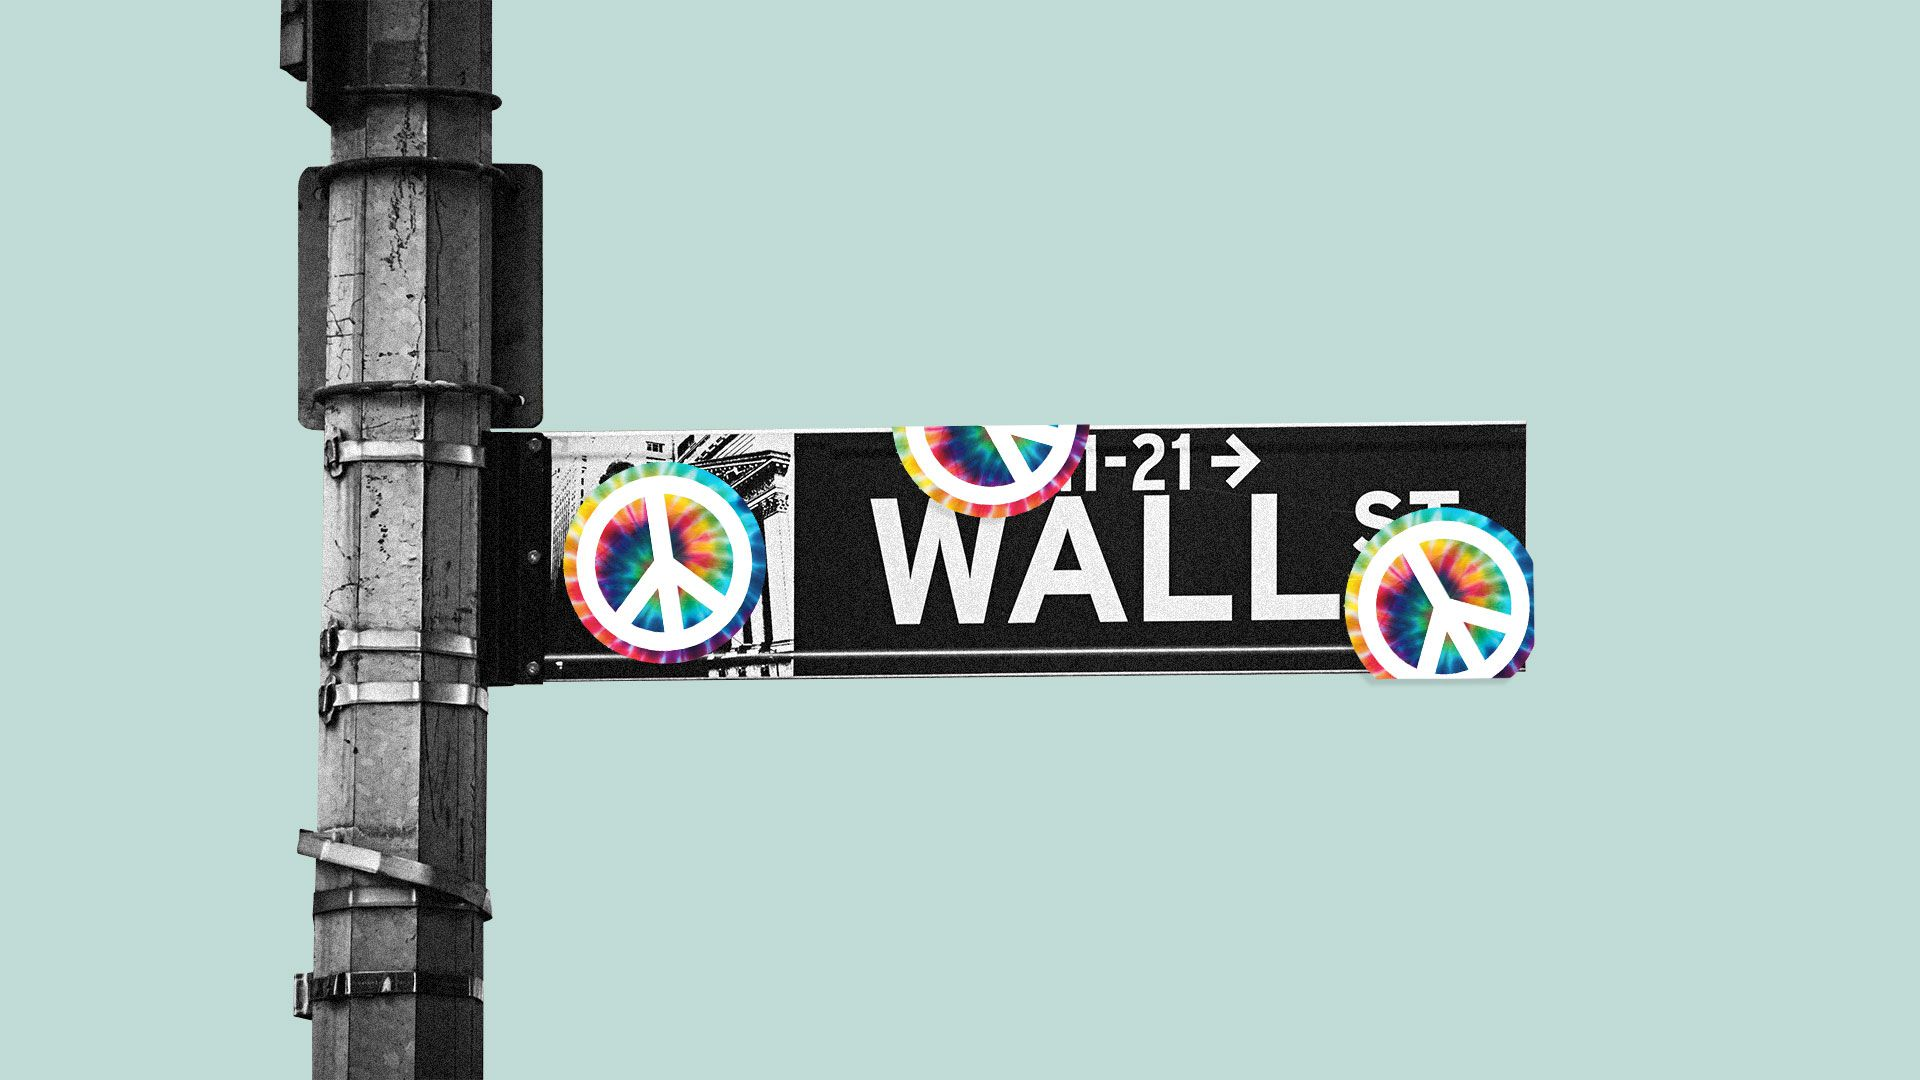 Illustration of the Wall Street sign with peace sign stickers all over it